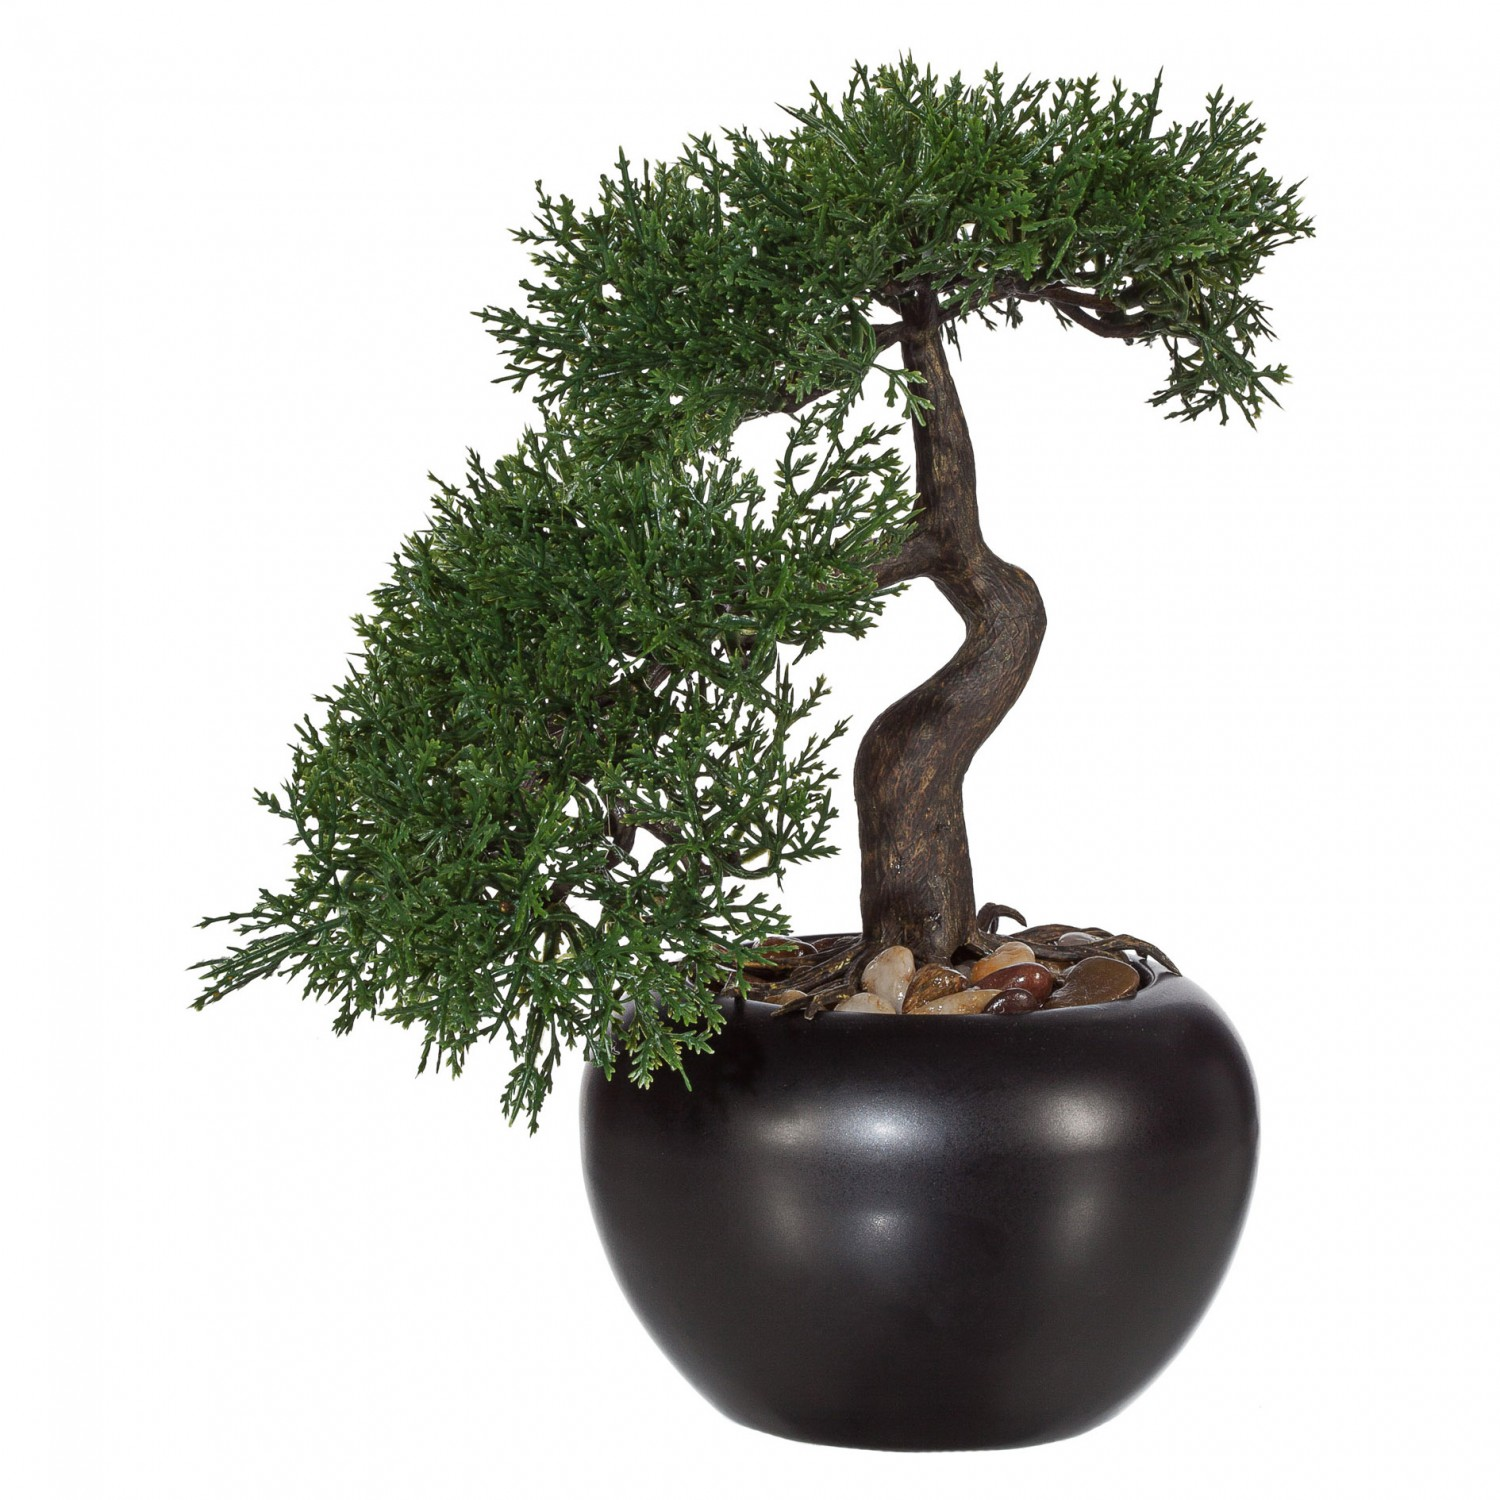 bonsai zeder kunstpflanze 25 cm in schwarzem keramiktopf. Black Bedroom Furniture Sets. Home Design Ideas